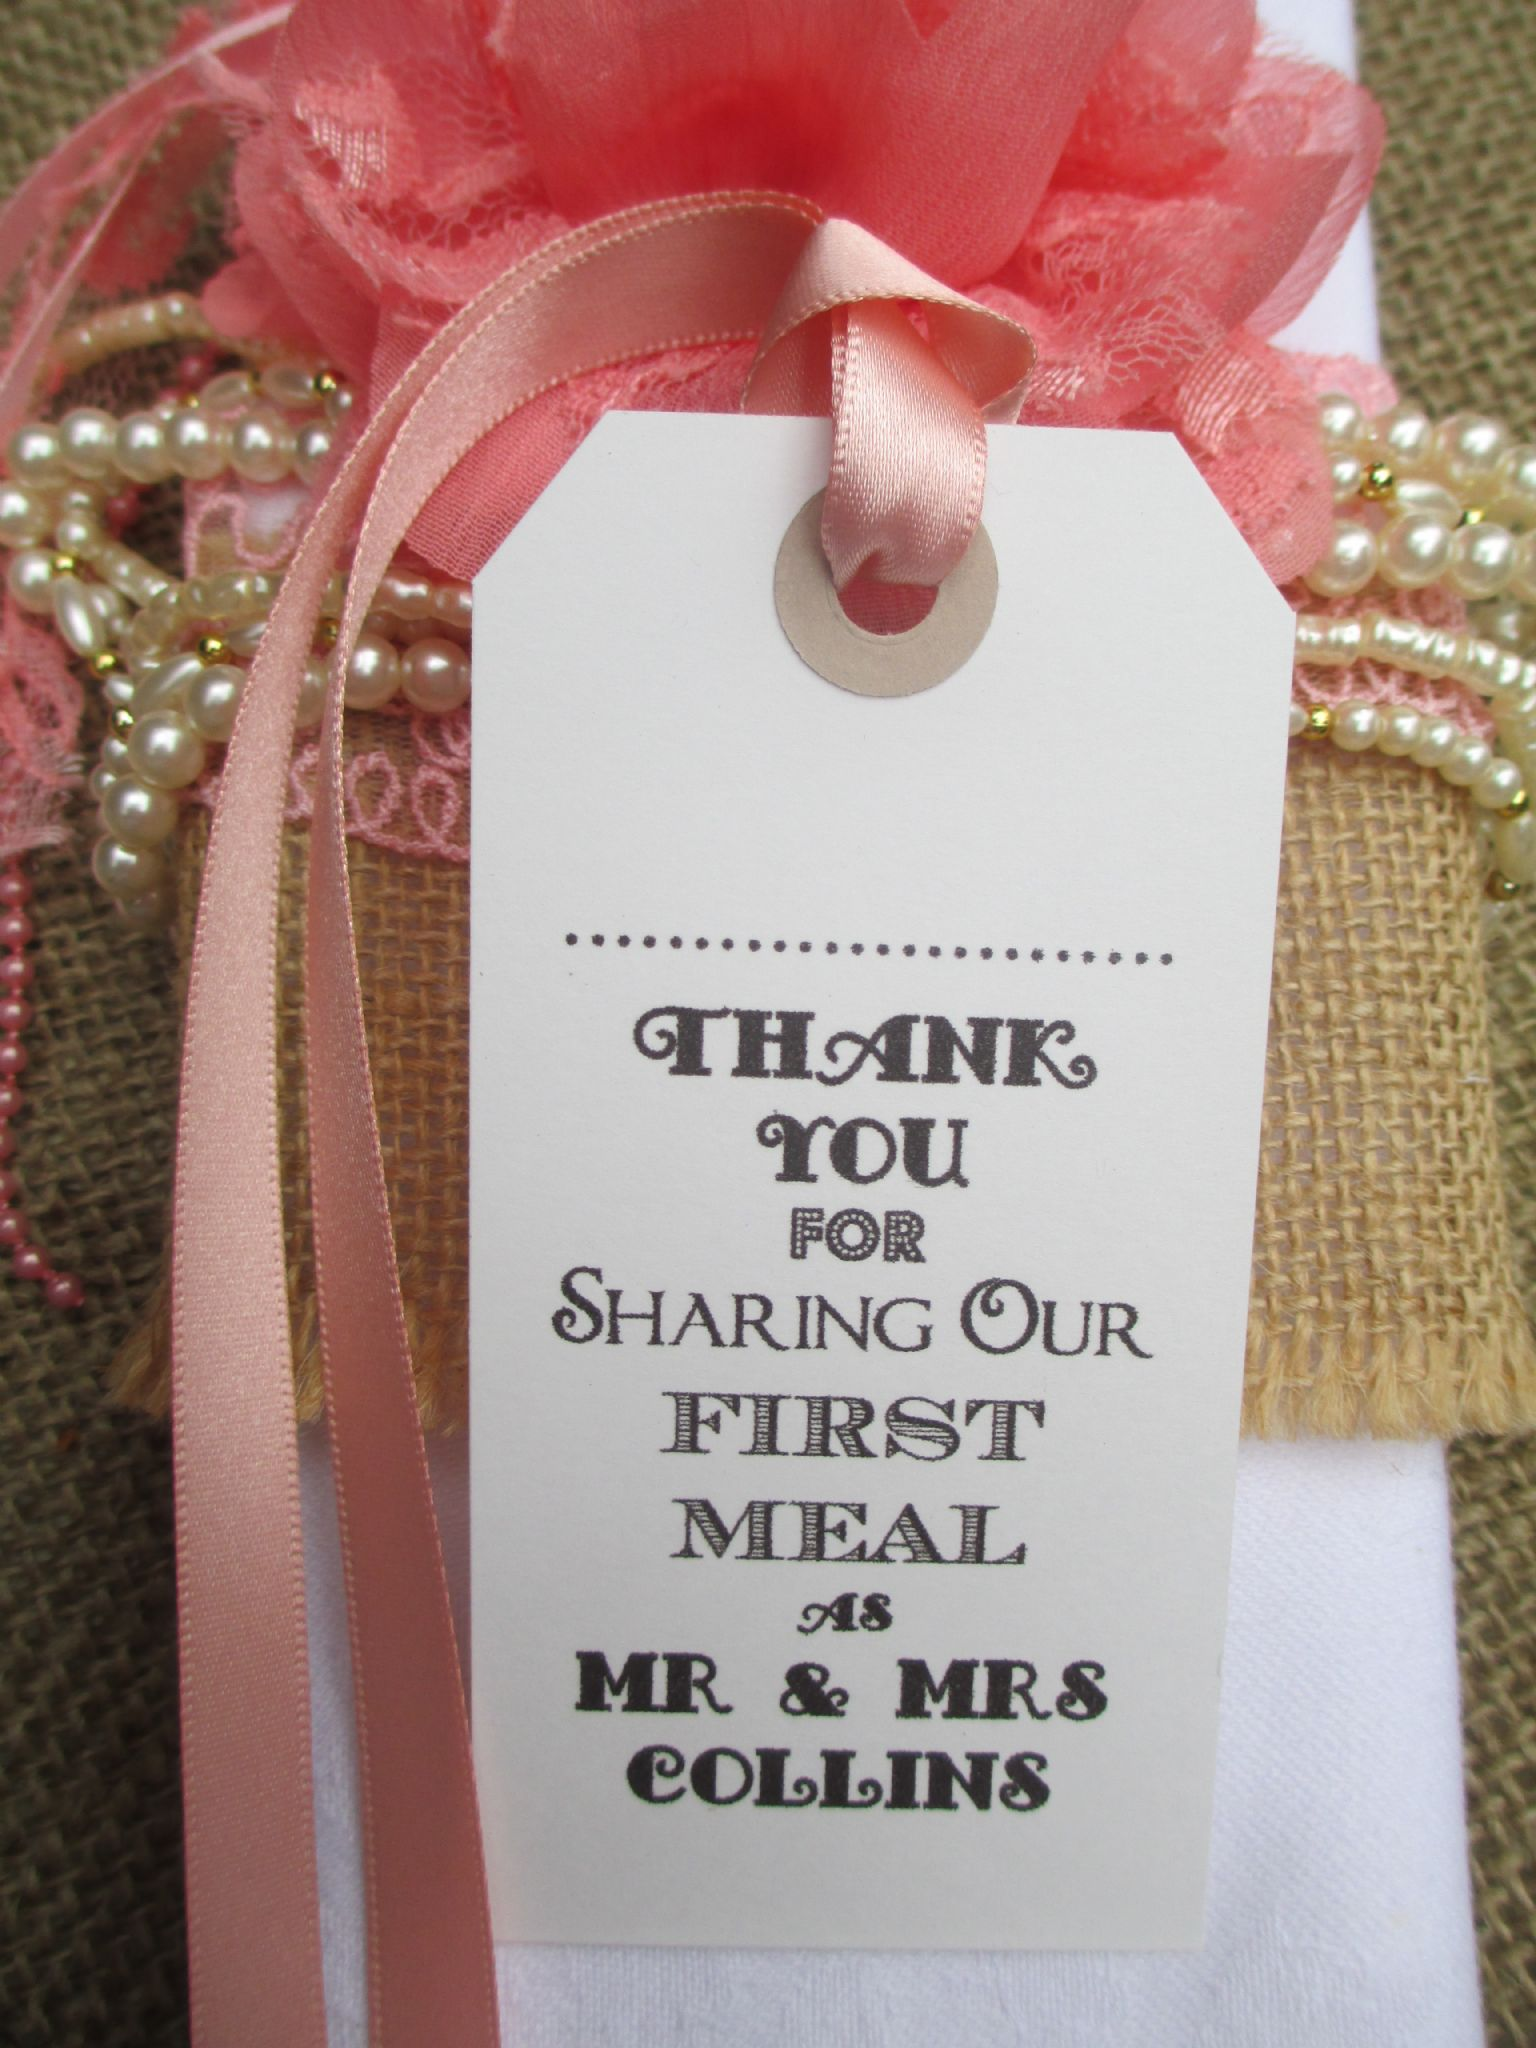 10 Wedding Name Place Tags Table Place Setting White Napkin Tie ...